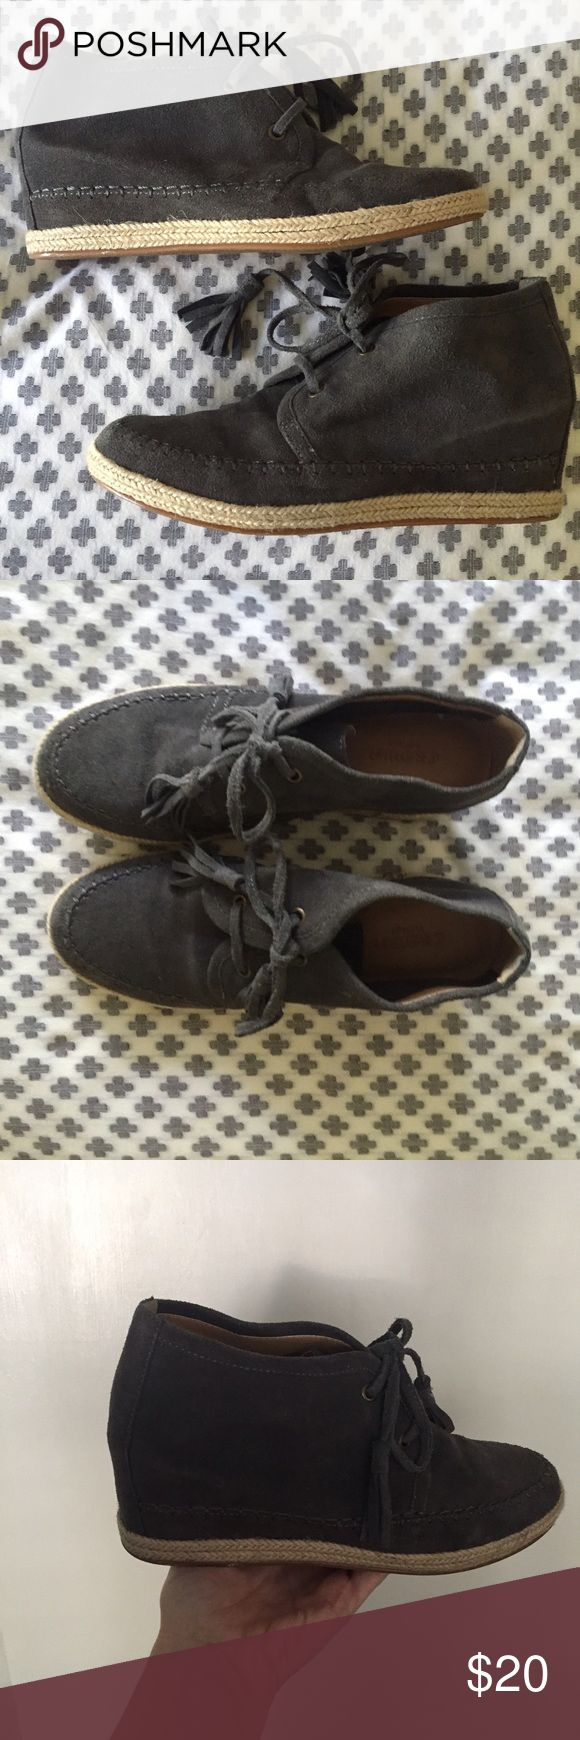 """Crown Vintage Slate Grey Espadrilles Wedges Very cute suede grey espadrilles wedges - prefect with jeans a cute too. The have the espadrille detail at the bottom, tassel laces and a 2.5"""" wedge heel. They are gently worn and ready for a few more seasons. Crown Vintage Shoes Wedges"""